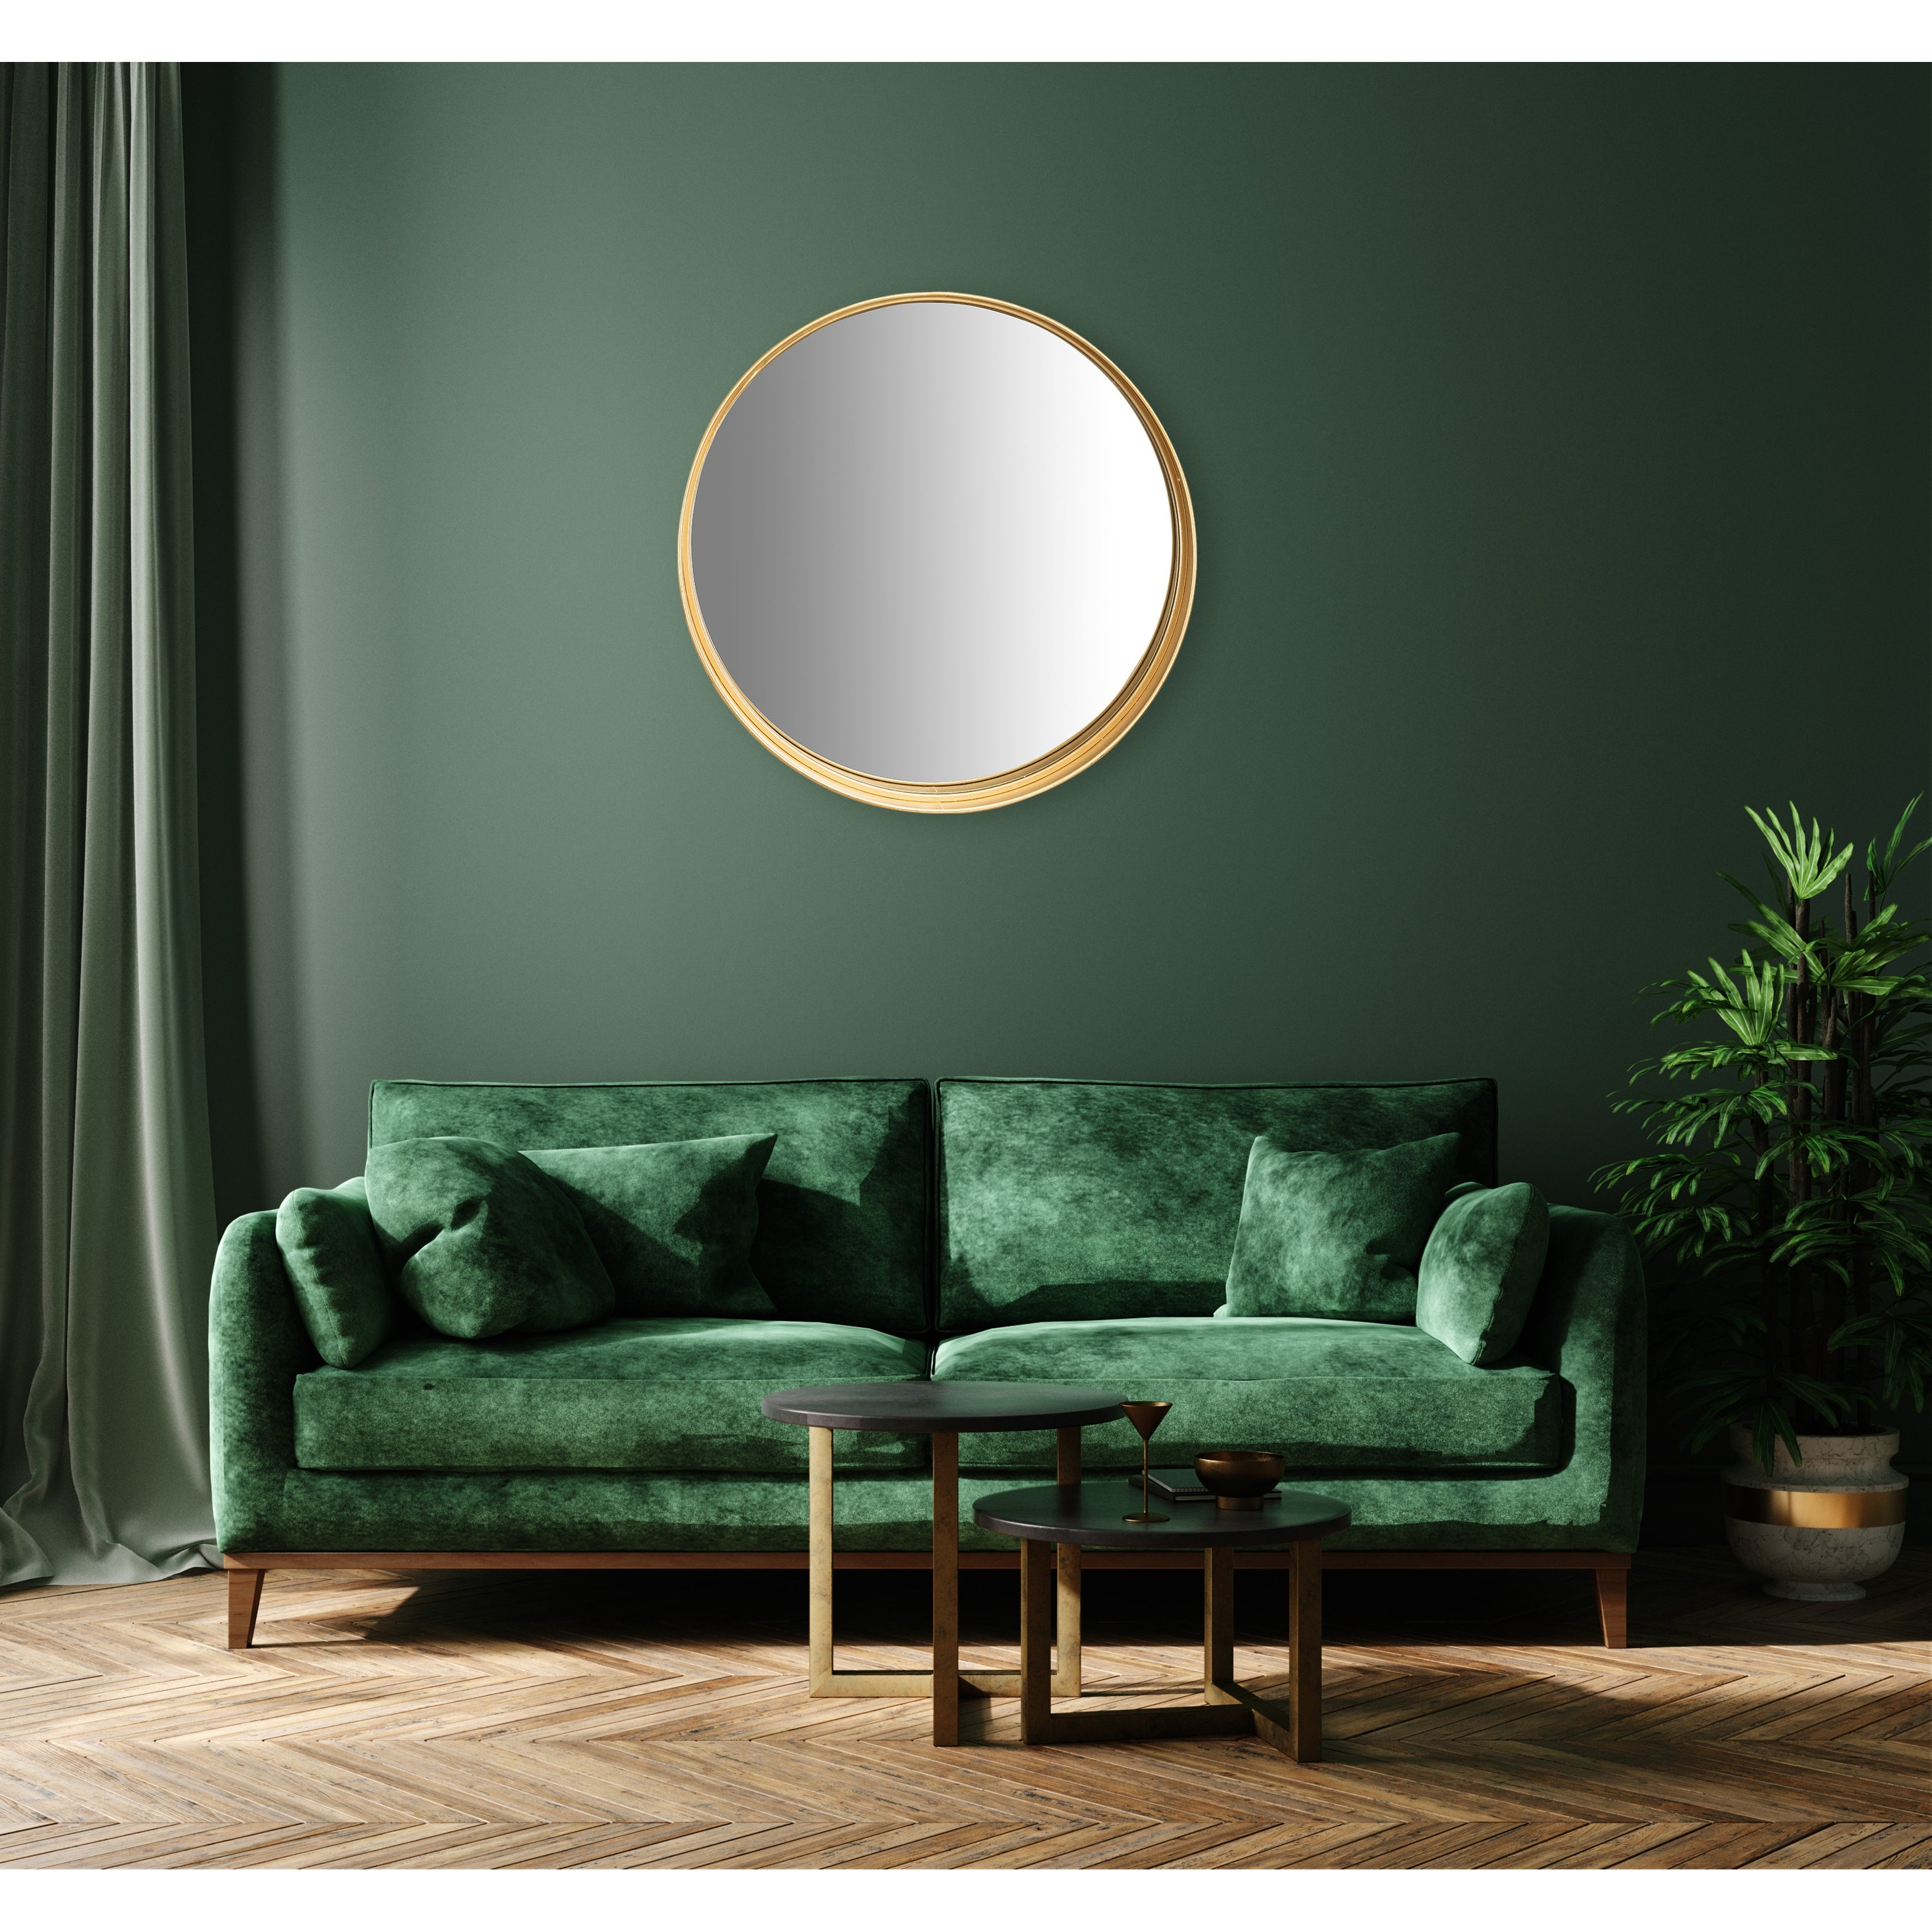 Round Accent Mirror With Gold Metal Frame Shelf Black And Gold On Sale Overstock 31261753